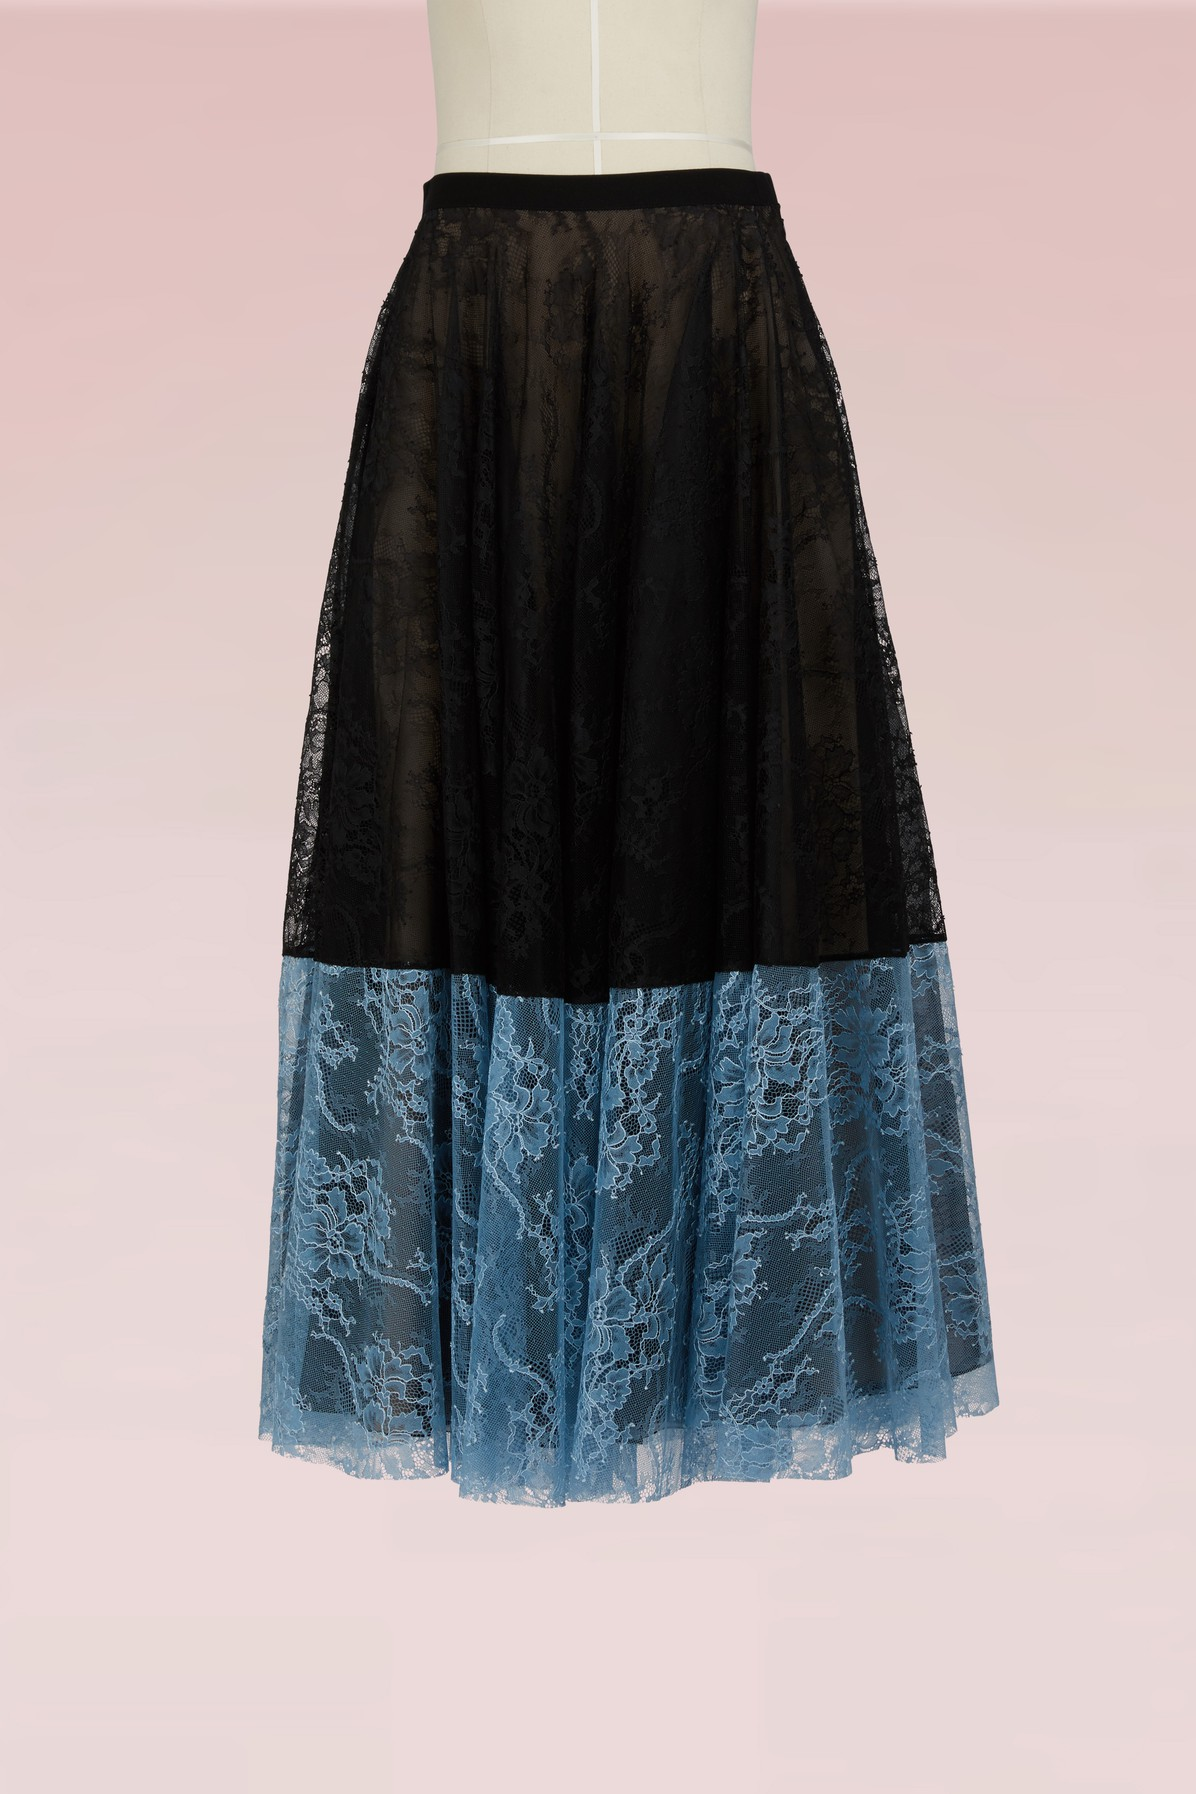 ac199ea705 Shop Erdem Skirts on sale at the Marie Claire Edit